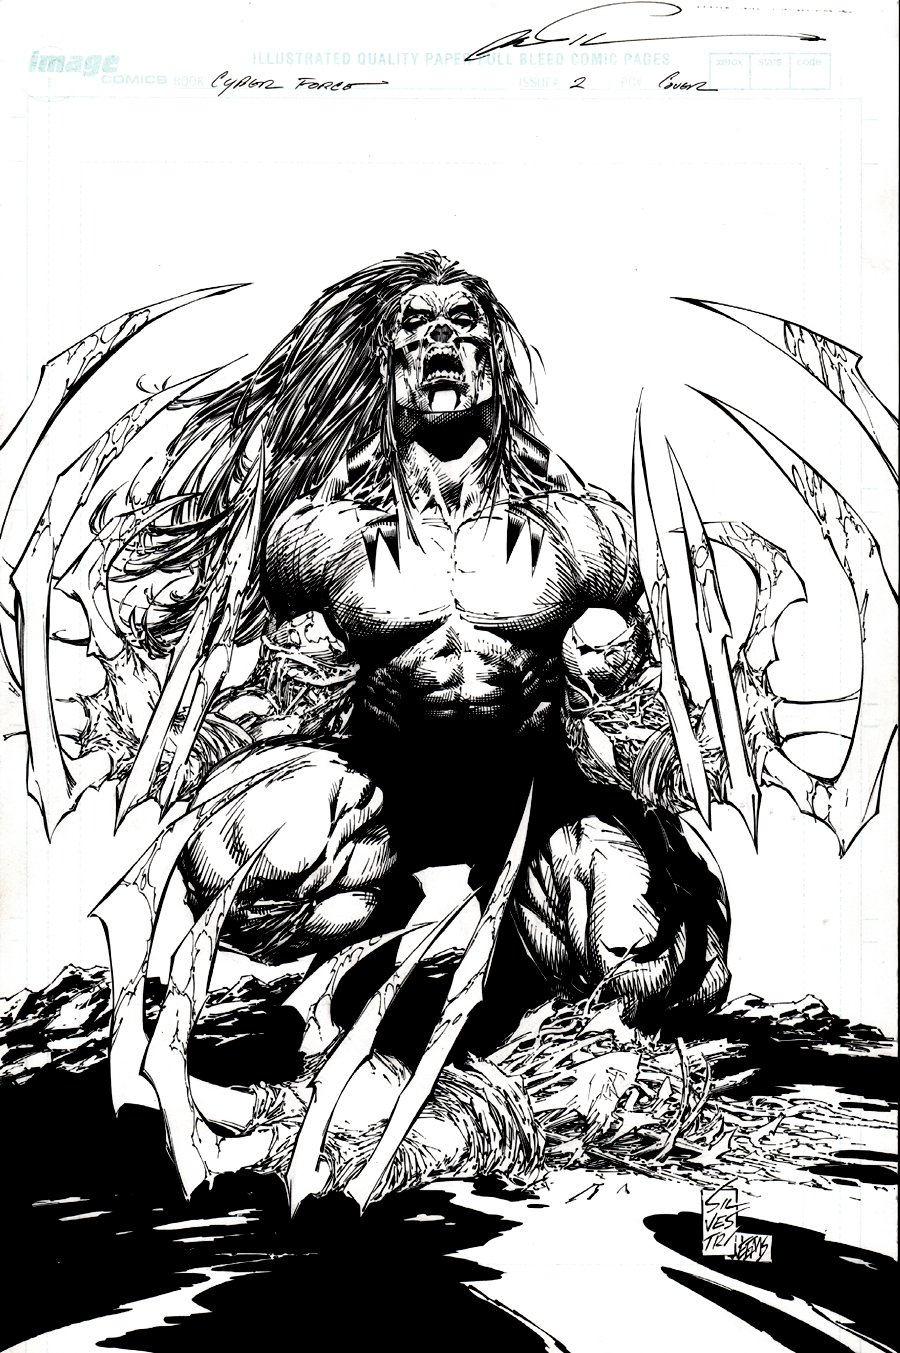 Cyberforce #2 Cover (Awesome Ripclaw, Used For 2 Covers!) 2006